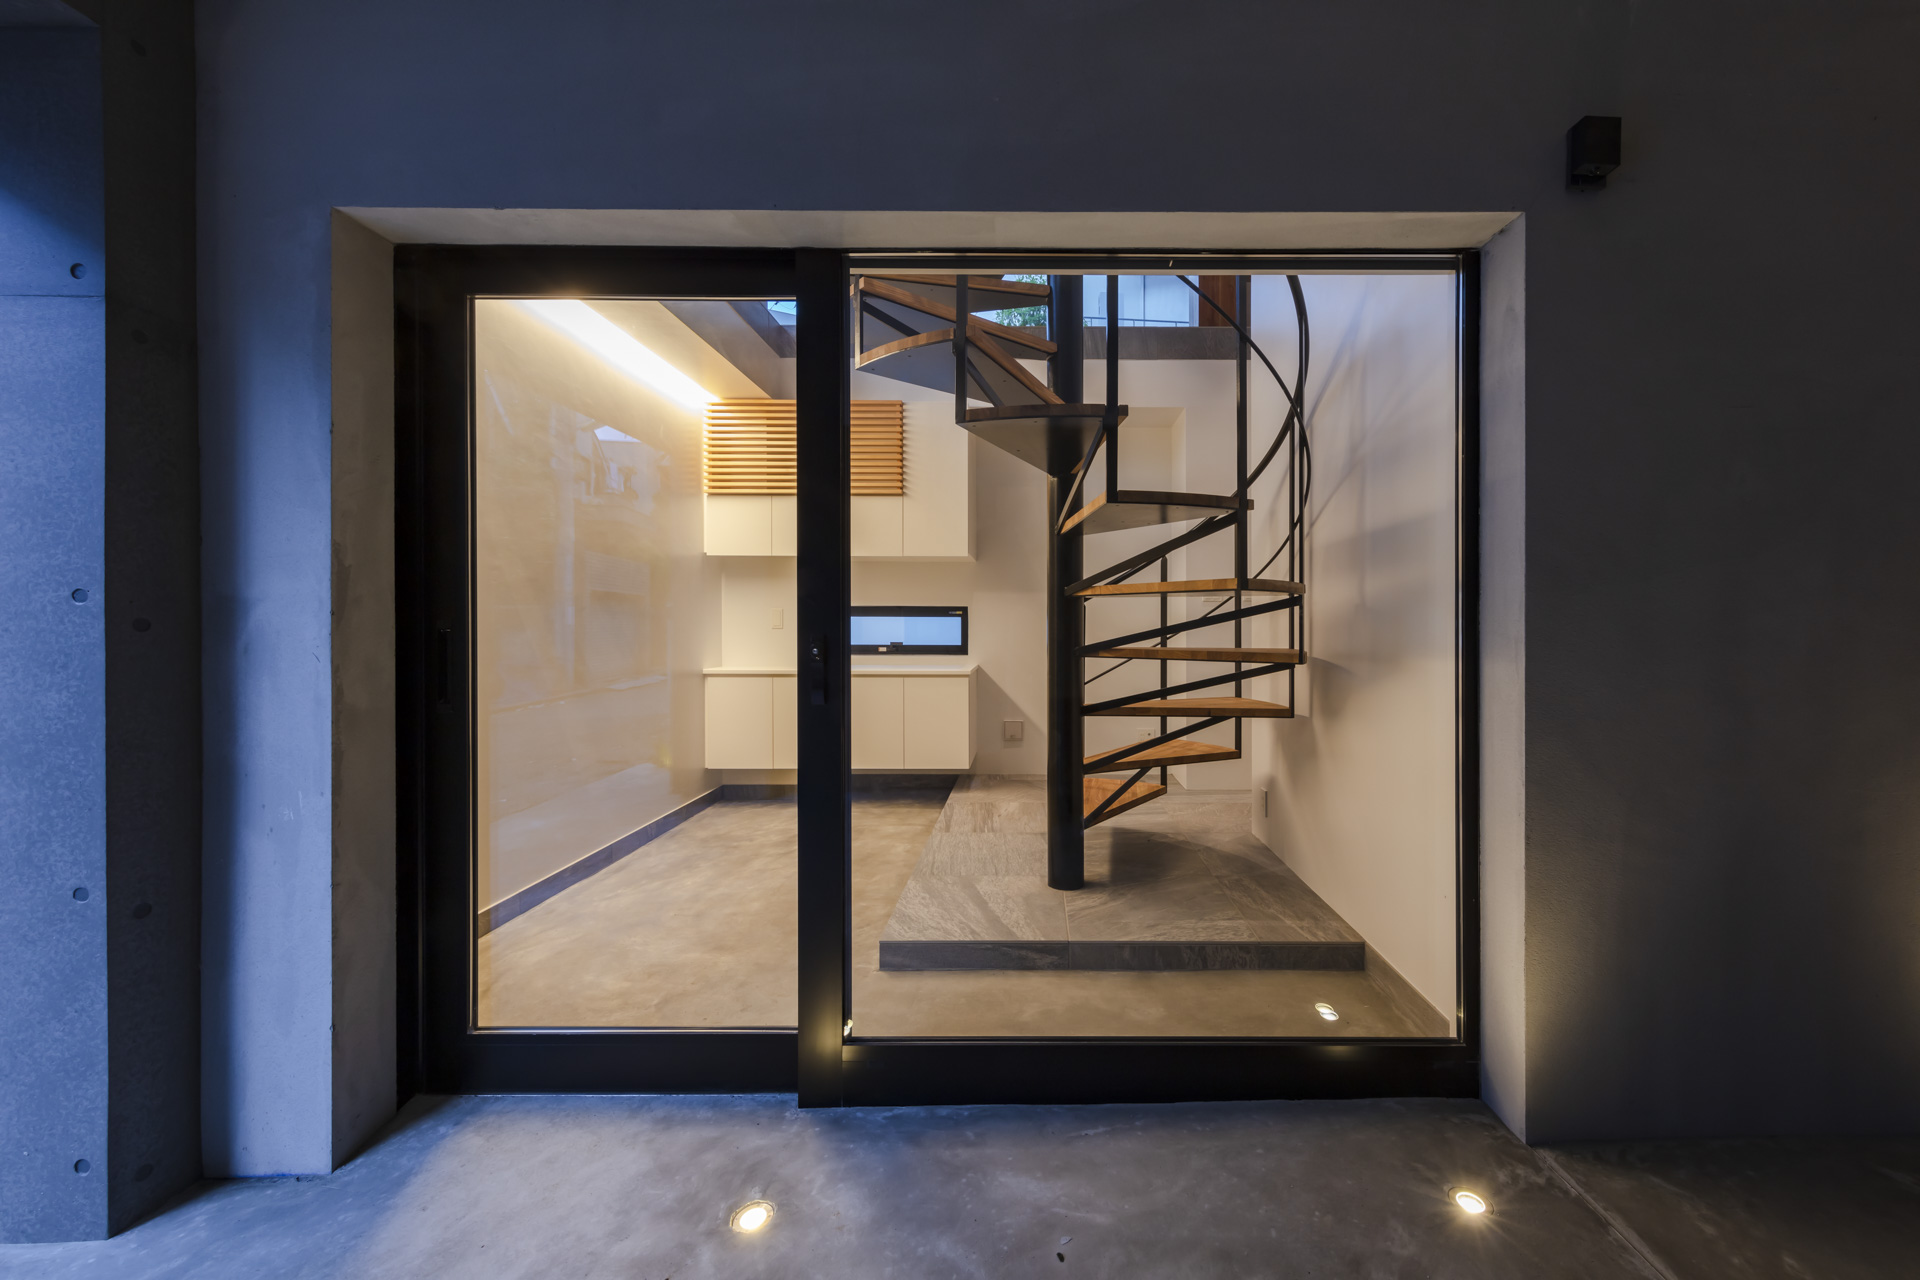 空環境計画 | KUU Architect & Associates